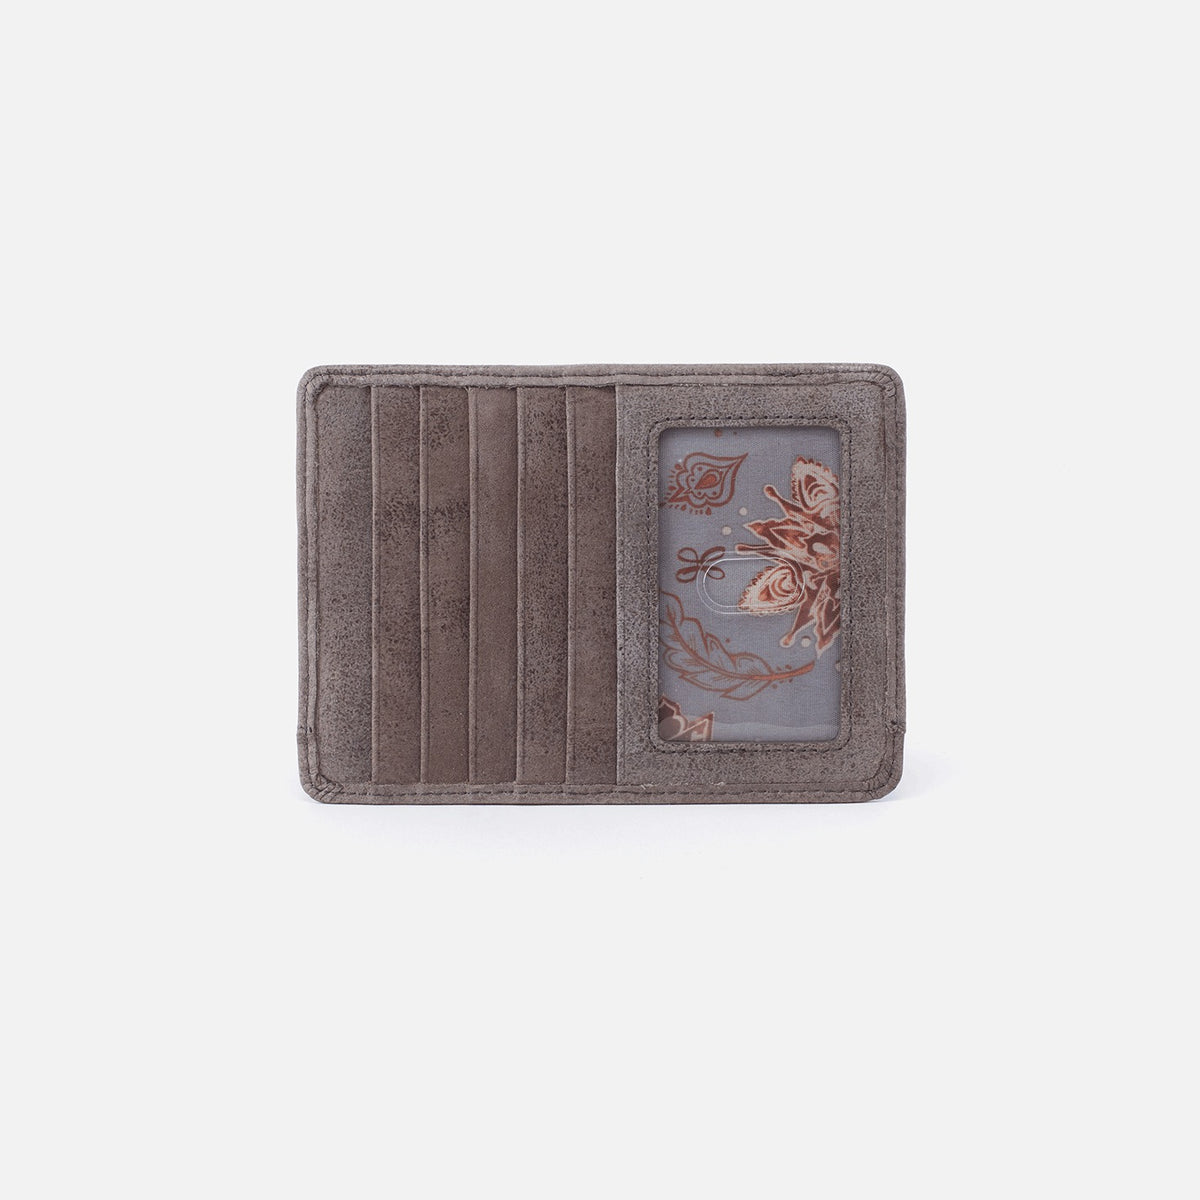 Euro Slide Credit Card Wallet - Metallic Titanium